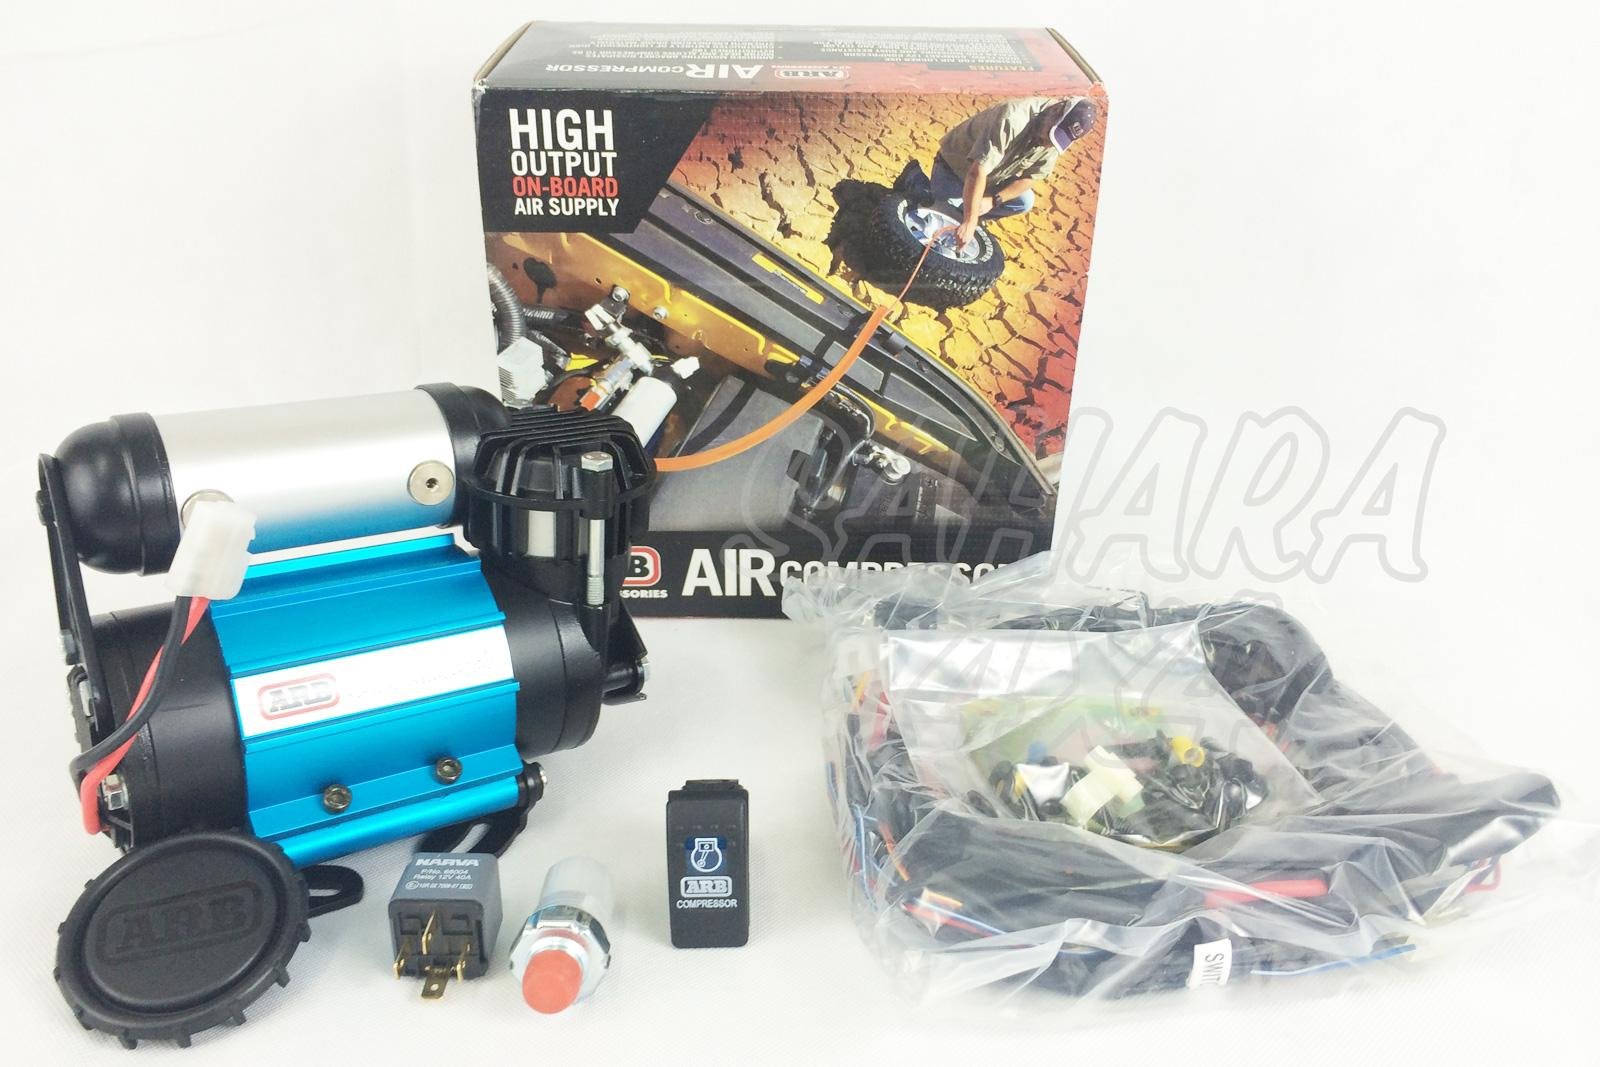 hight resolution of arb air compressor for locker with air output ckma12 only valid for arb lockers 66